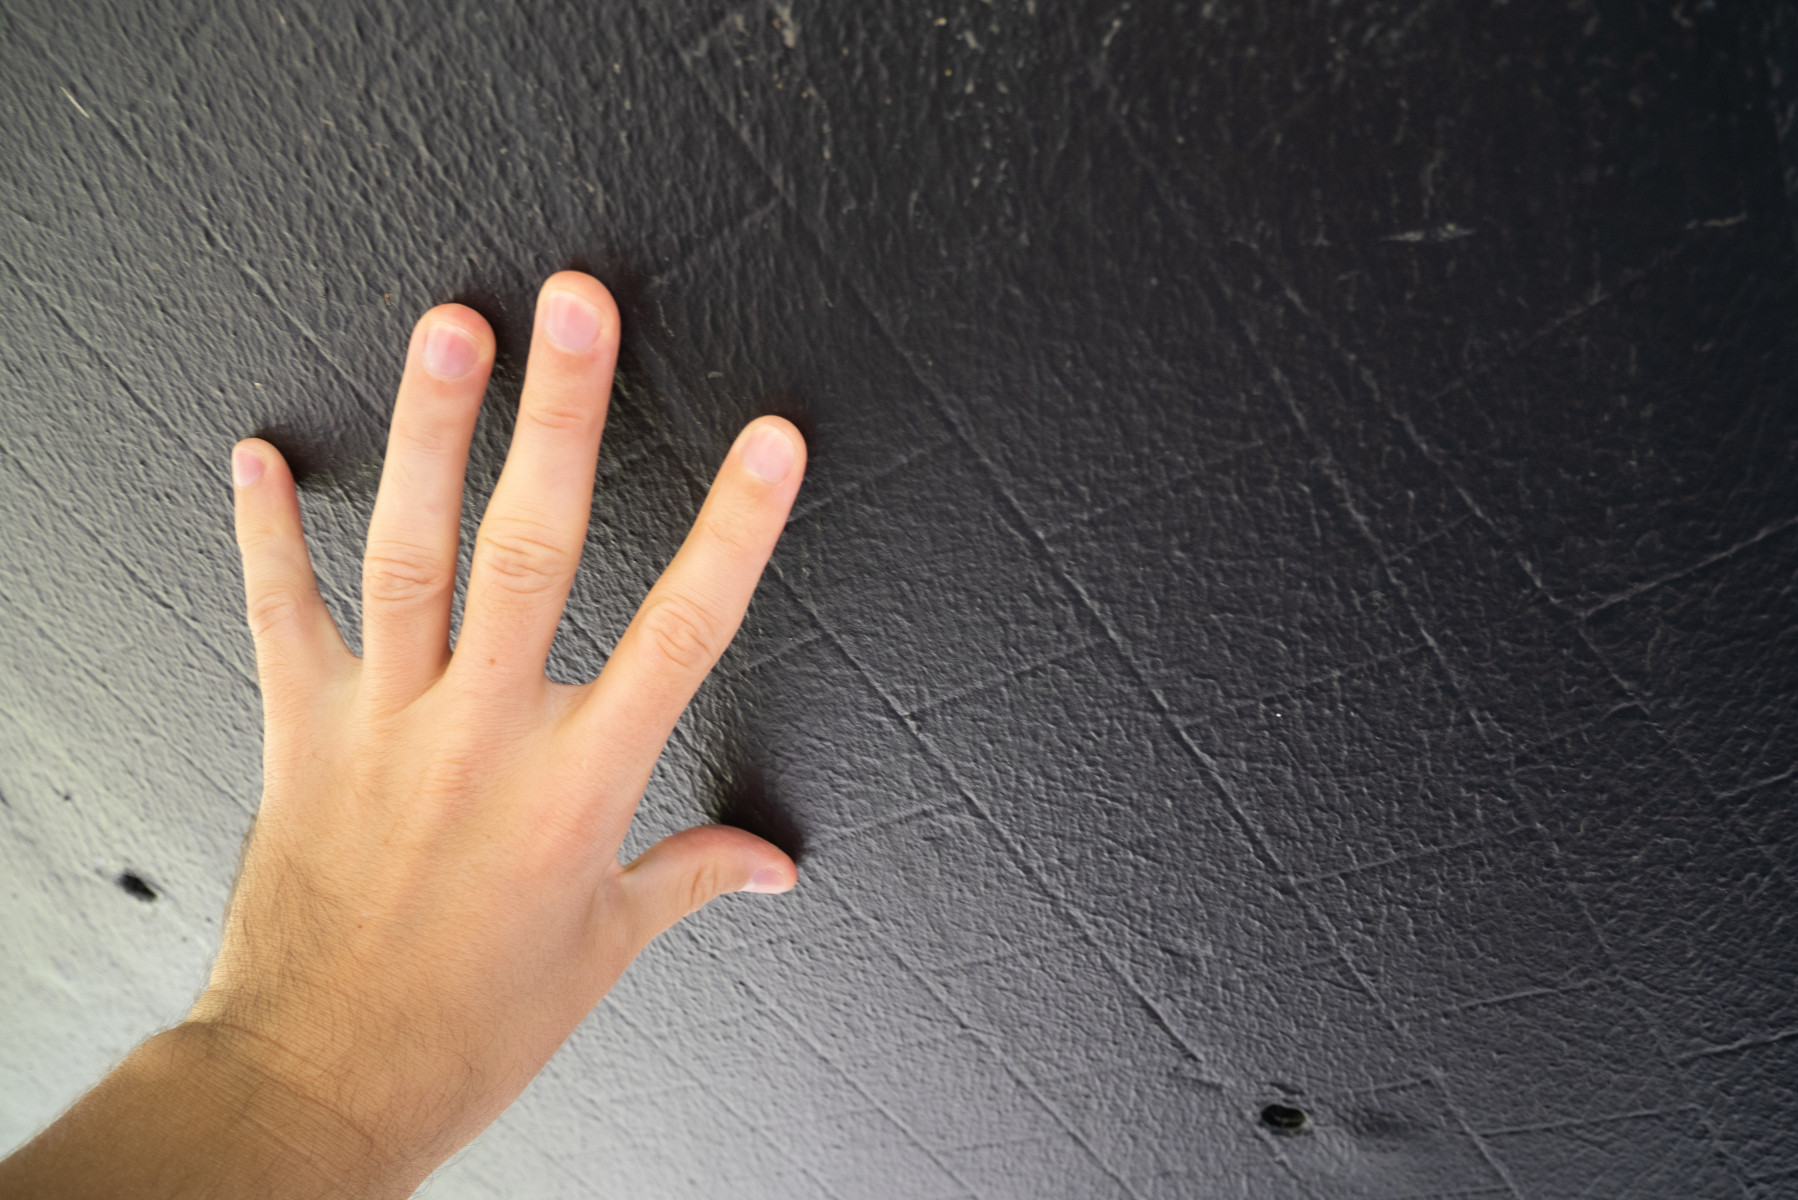 Your blogger's hand touching the underside of the wind tunnel model, with the individual tiles visible.